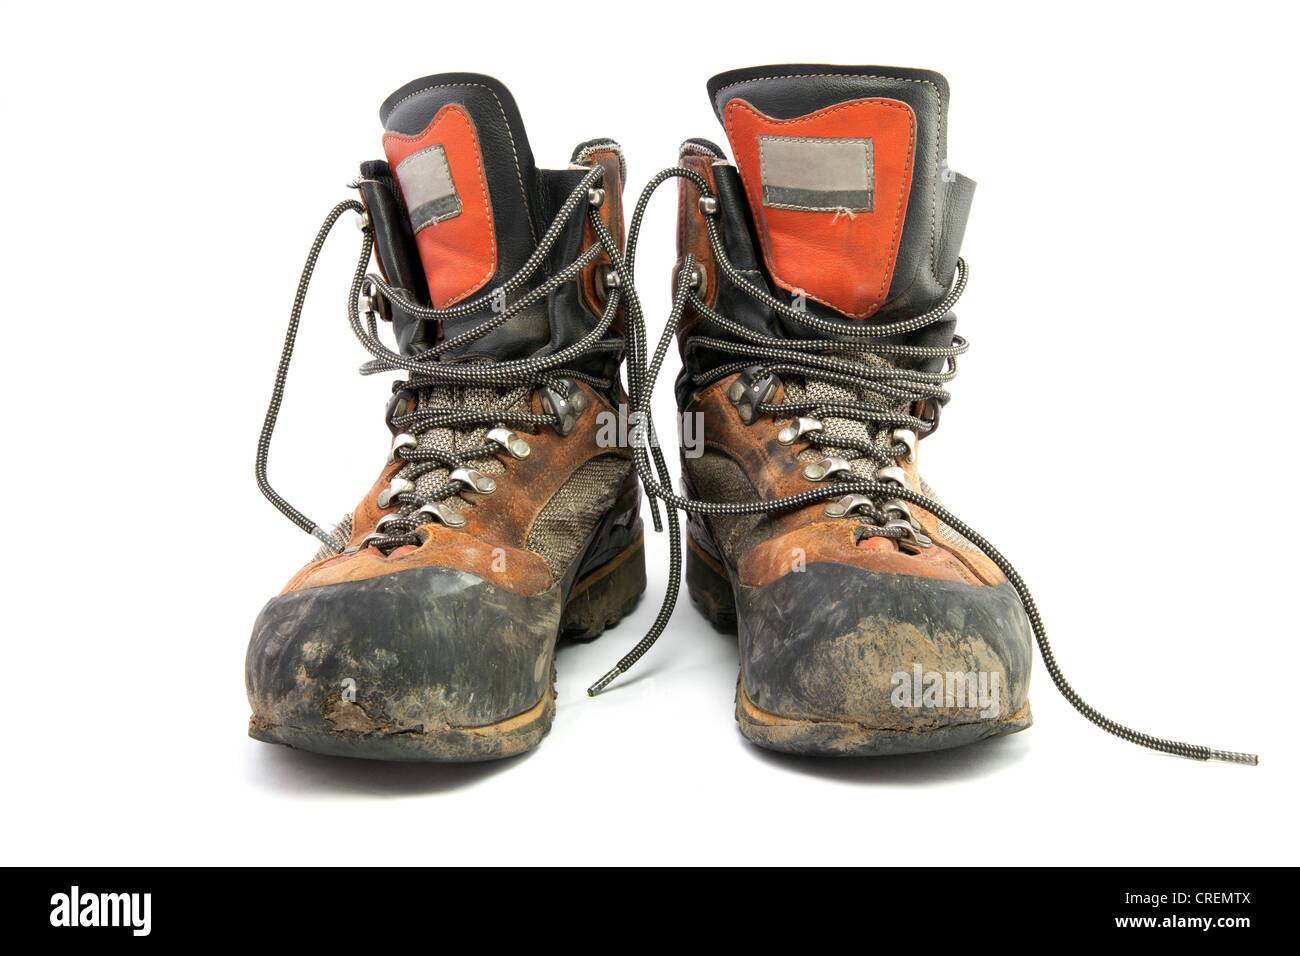 Pair of worn hiking boots - Stock Image